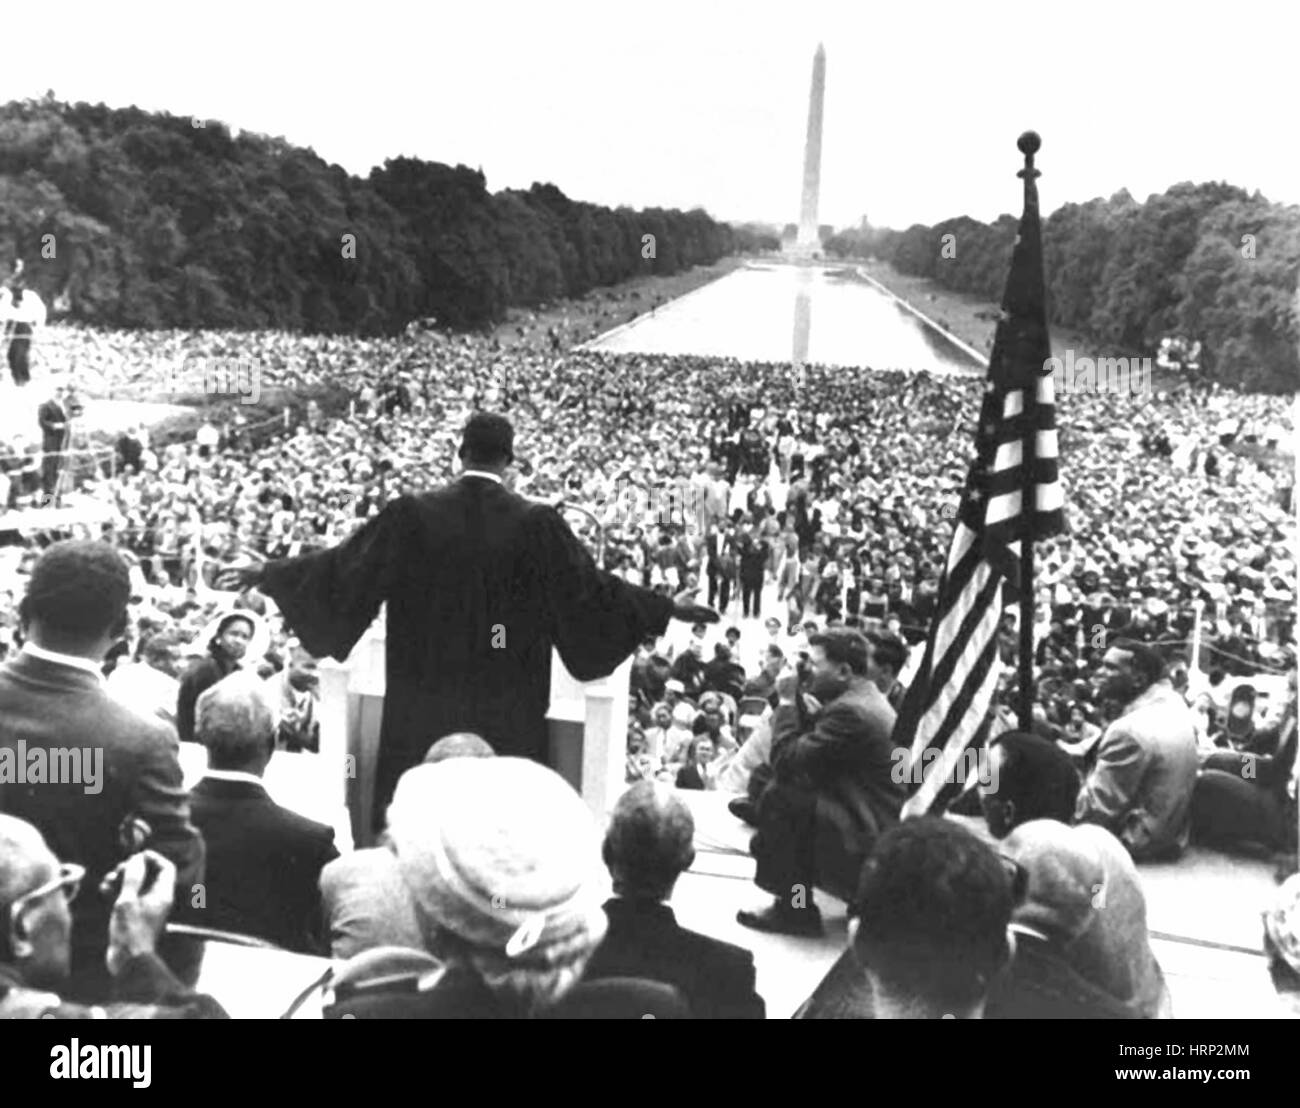 Prayer Pilgrimage for Freedom, 1957 - Stock Image